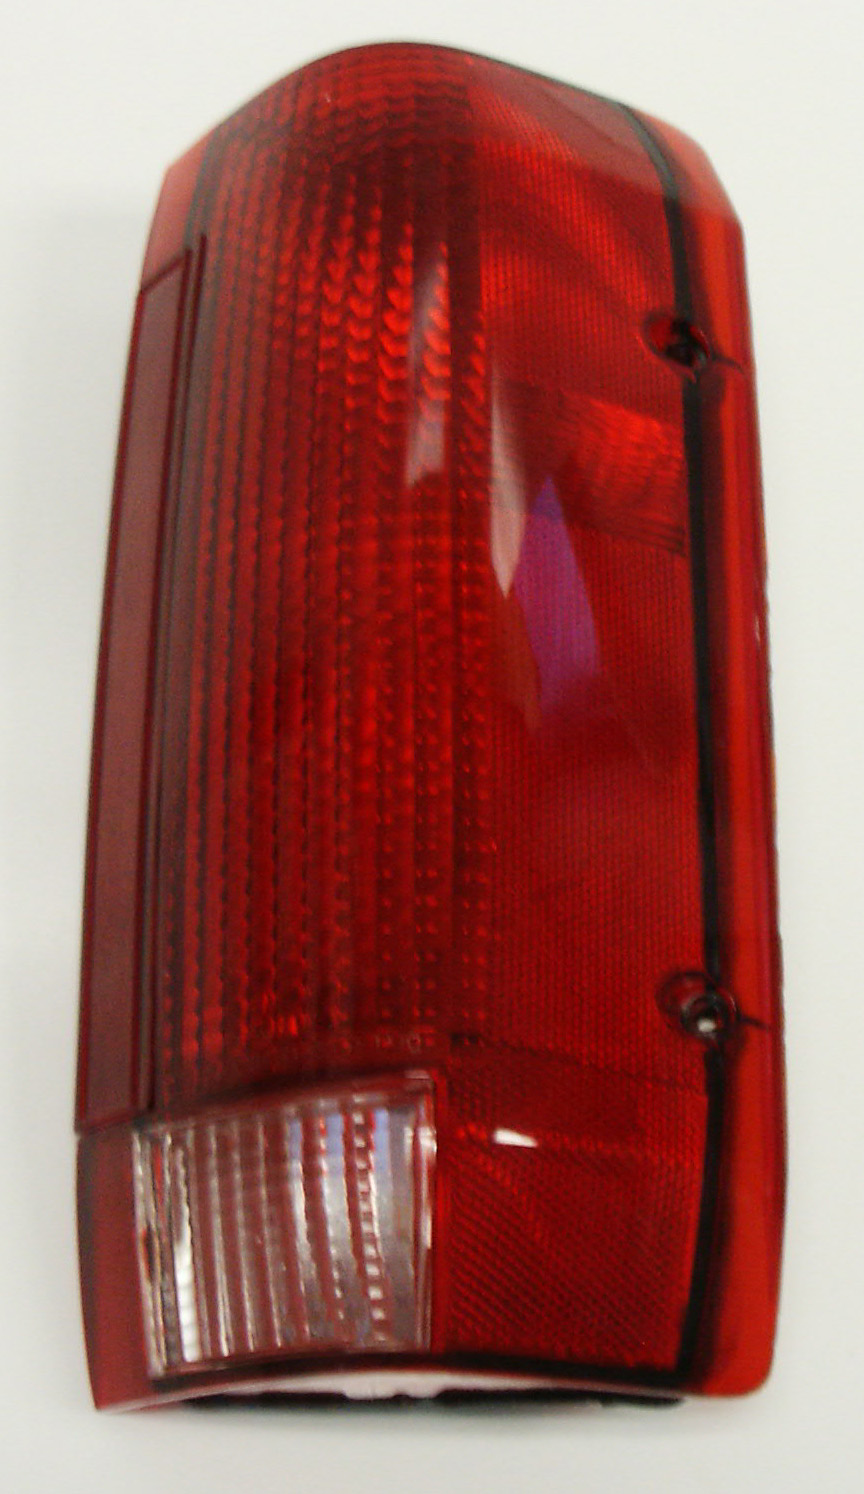 hight resolution of  truck tail light lens right images right8996taillight jpg